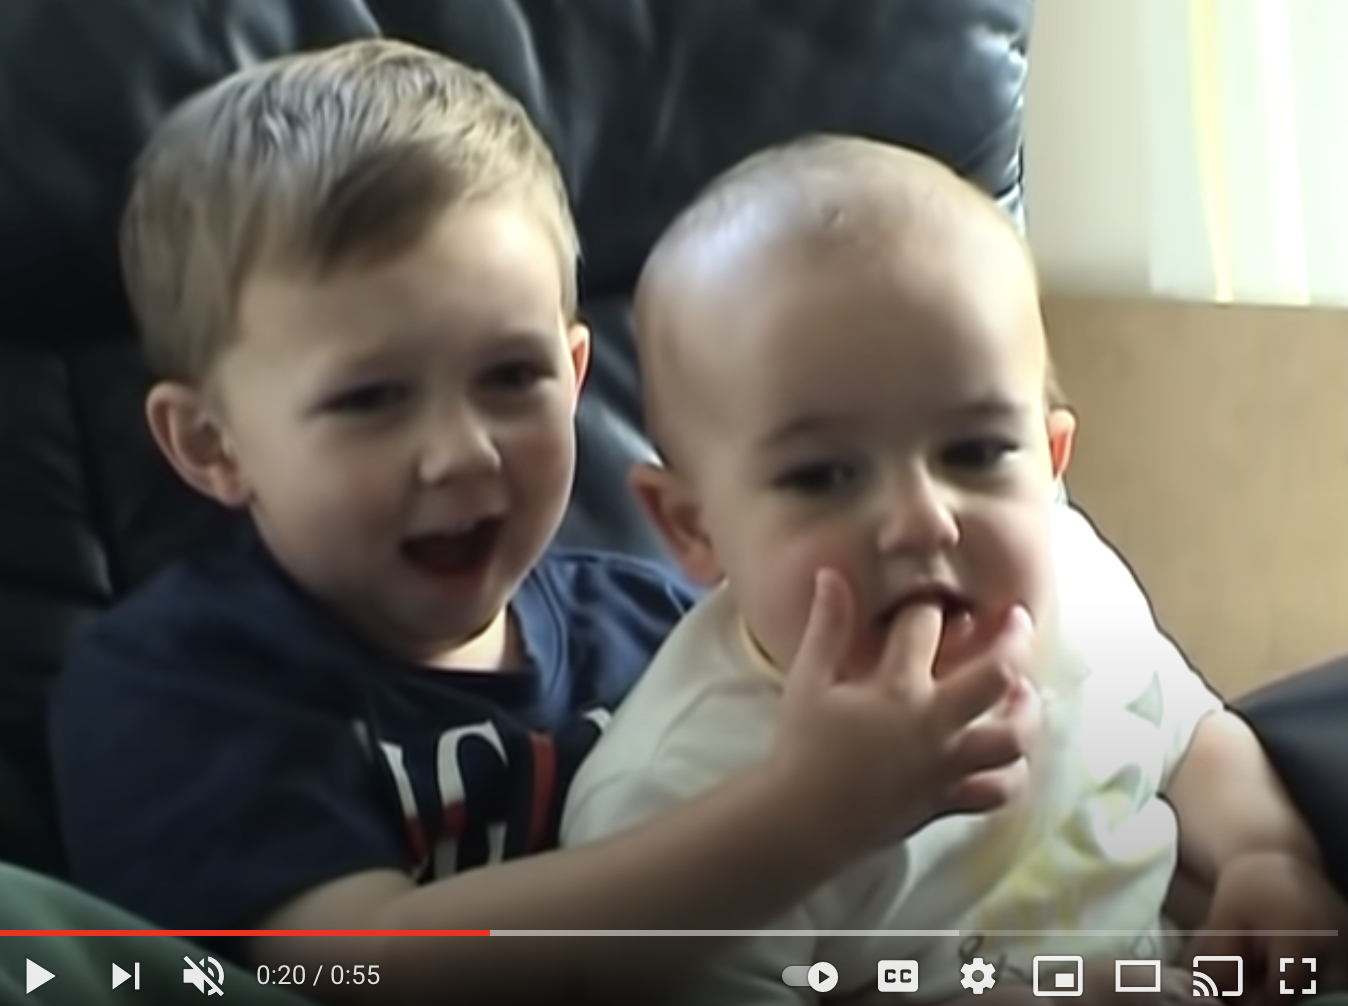 """A screenshot of the viral video """"Charlie bit me"""" shows a little boy biting his brother's finger."""